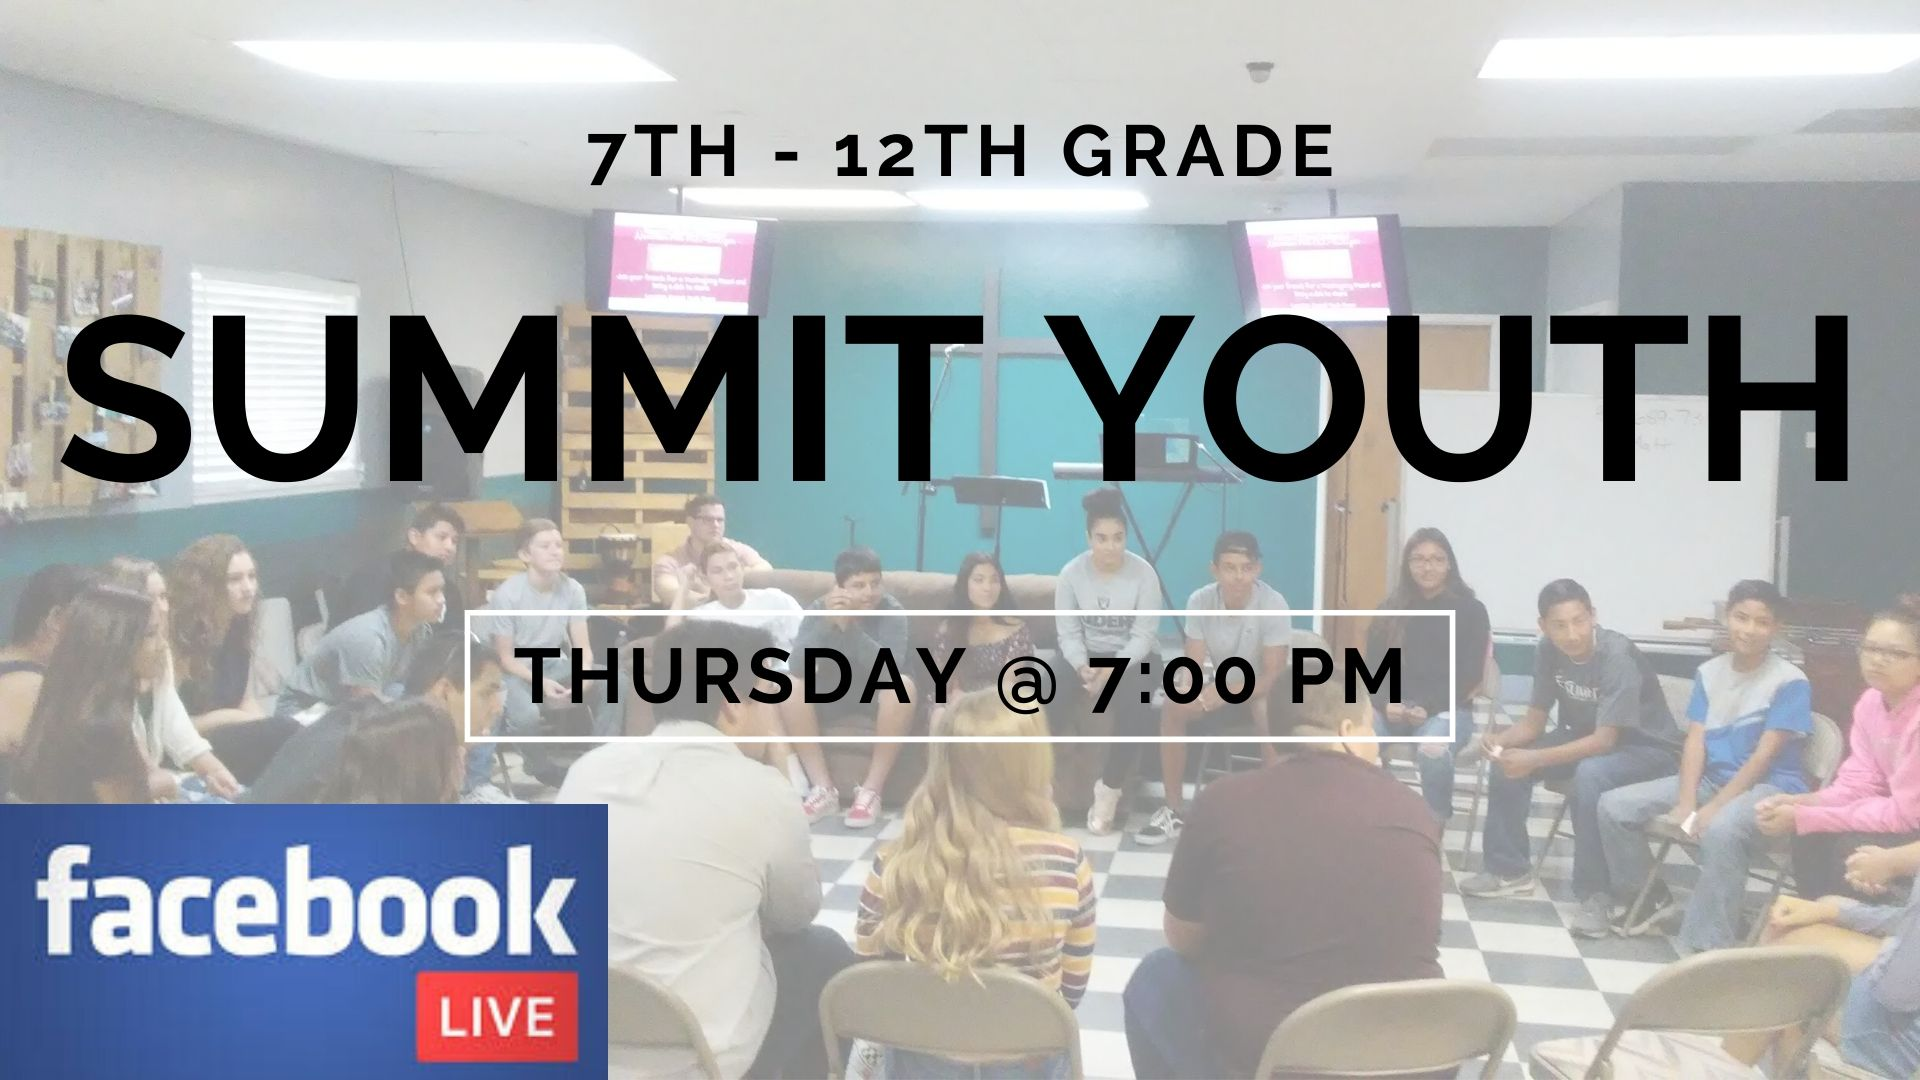 Live online Summit Youth